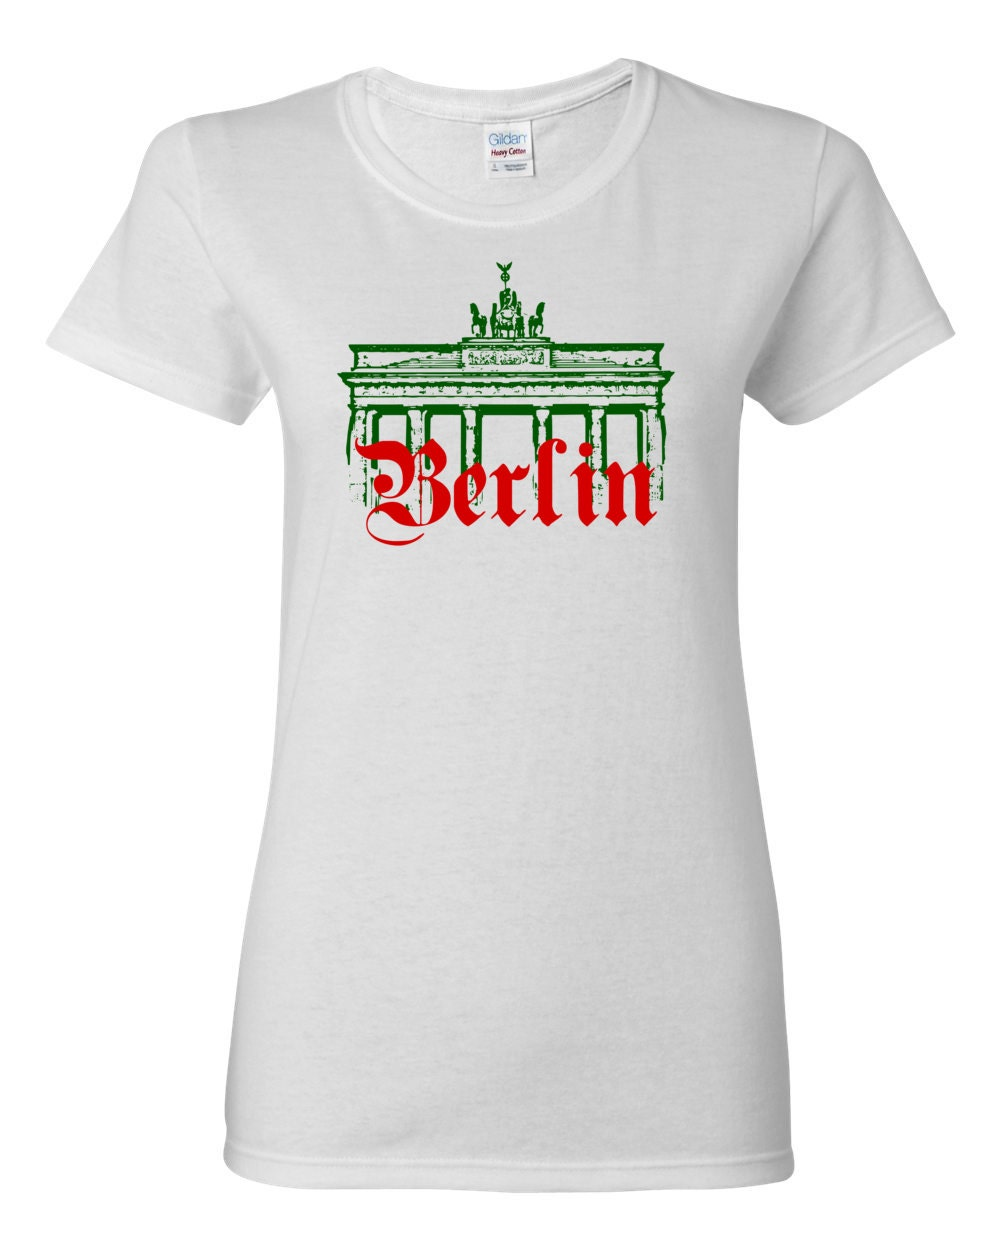 Brandenburg Gate Berlin Germany Womens History T-shirt